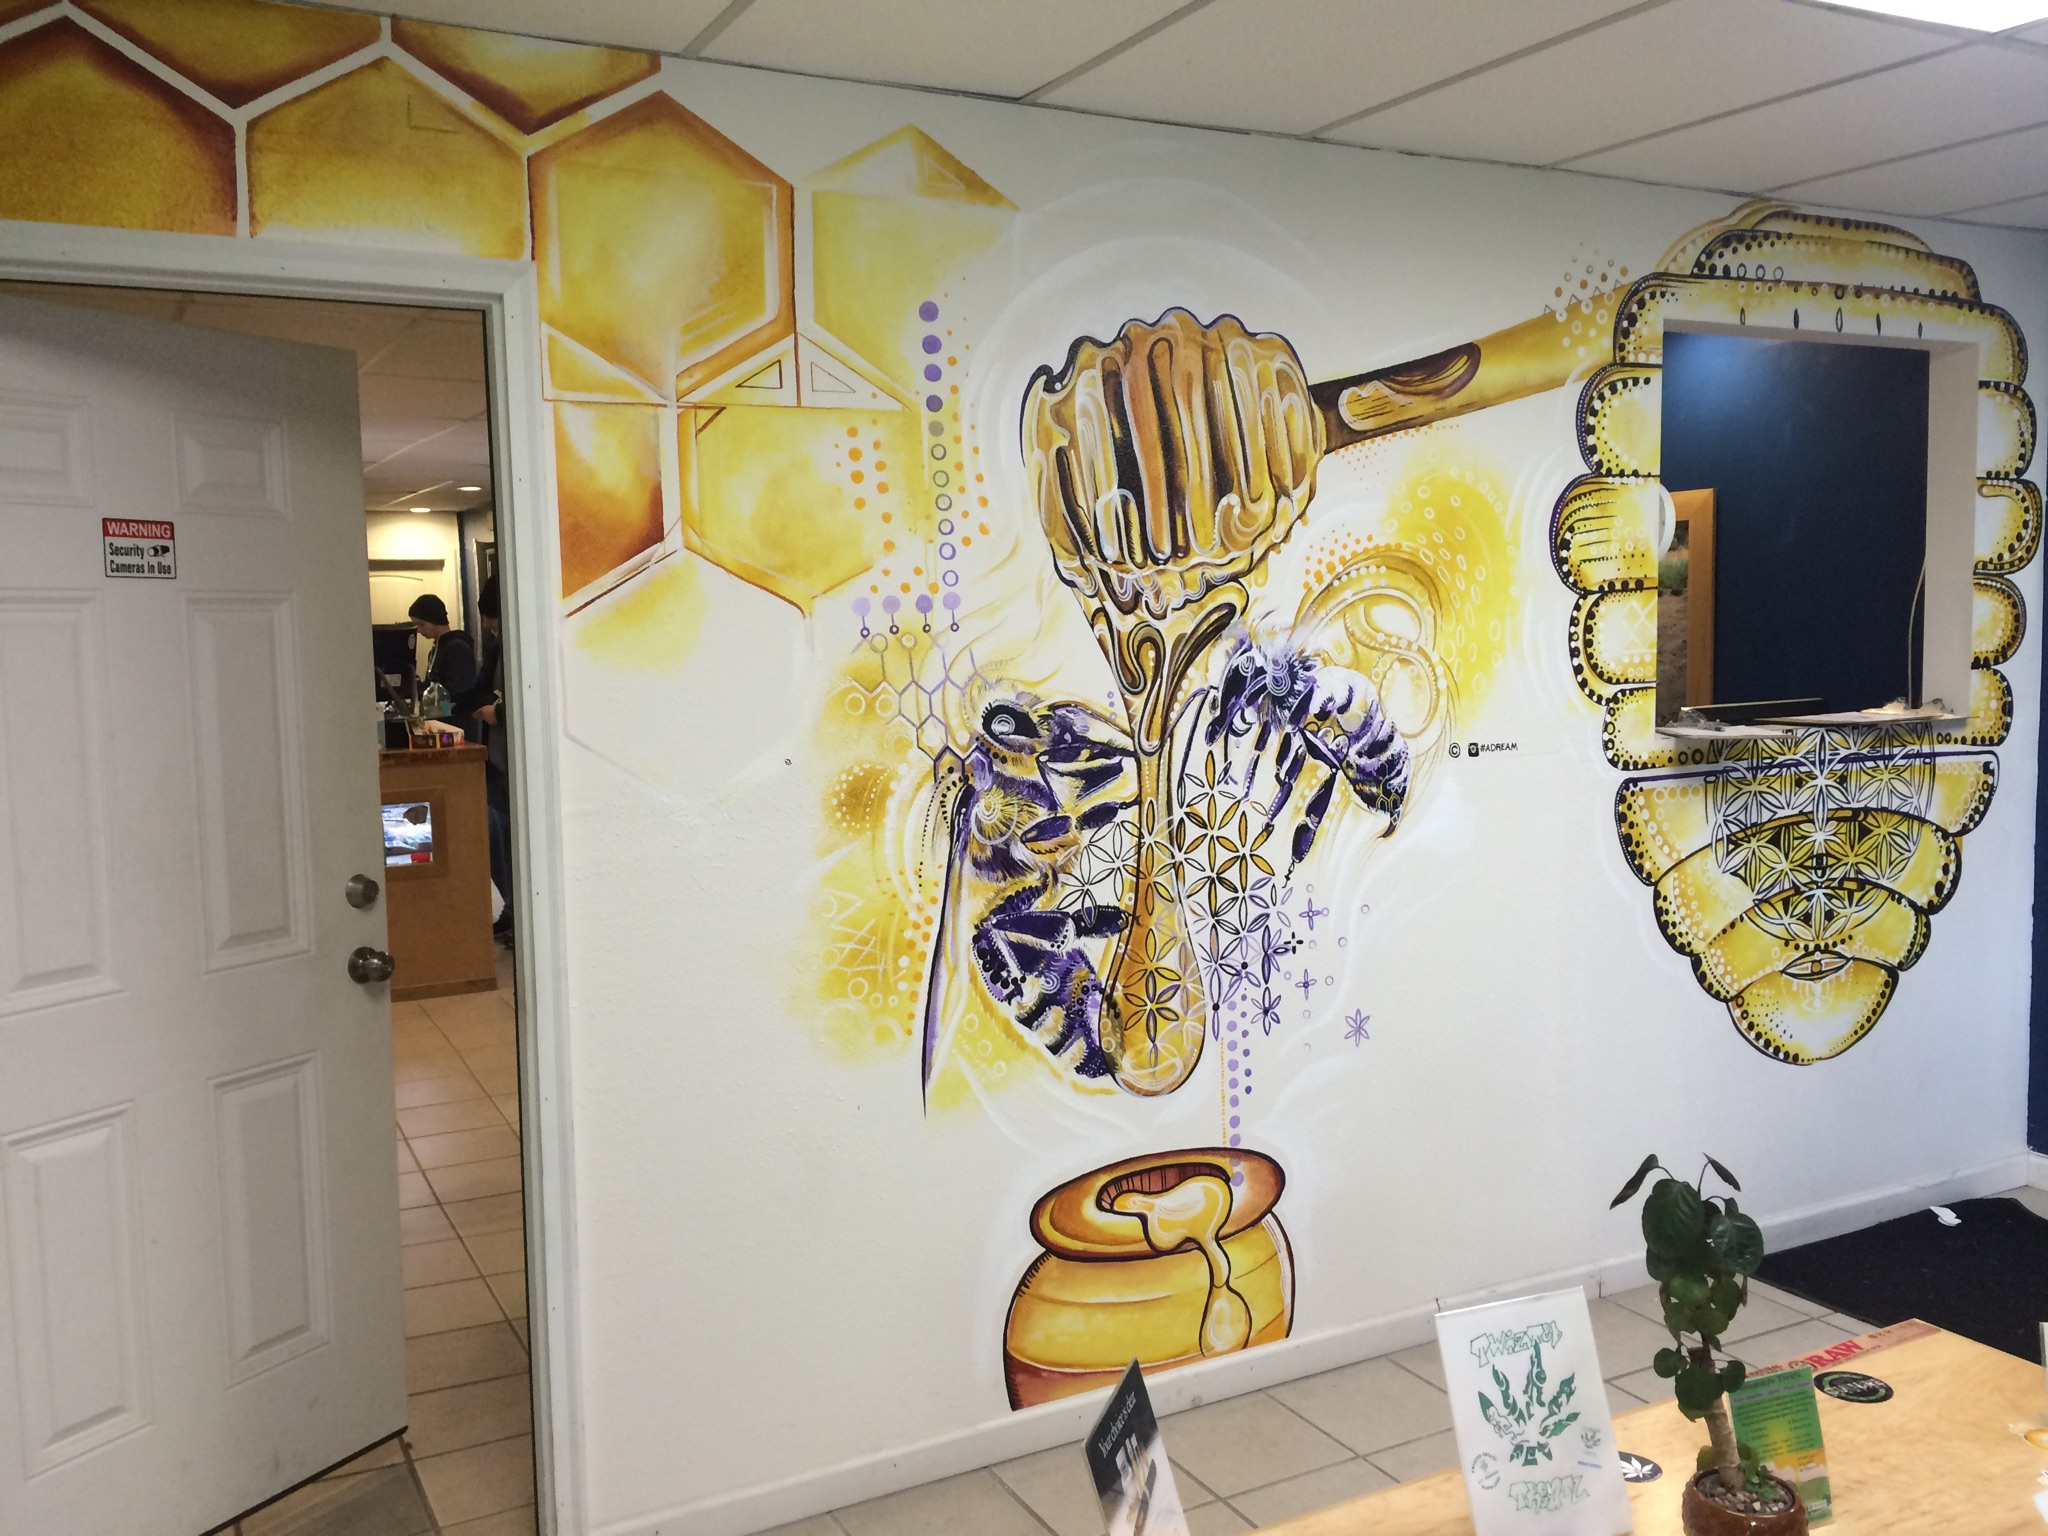 Washington Herbal Remedies medical marijuana dispensary in Lynnwood, Washington